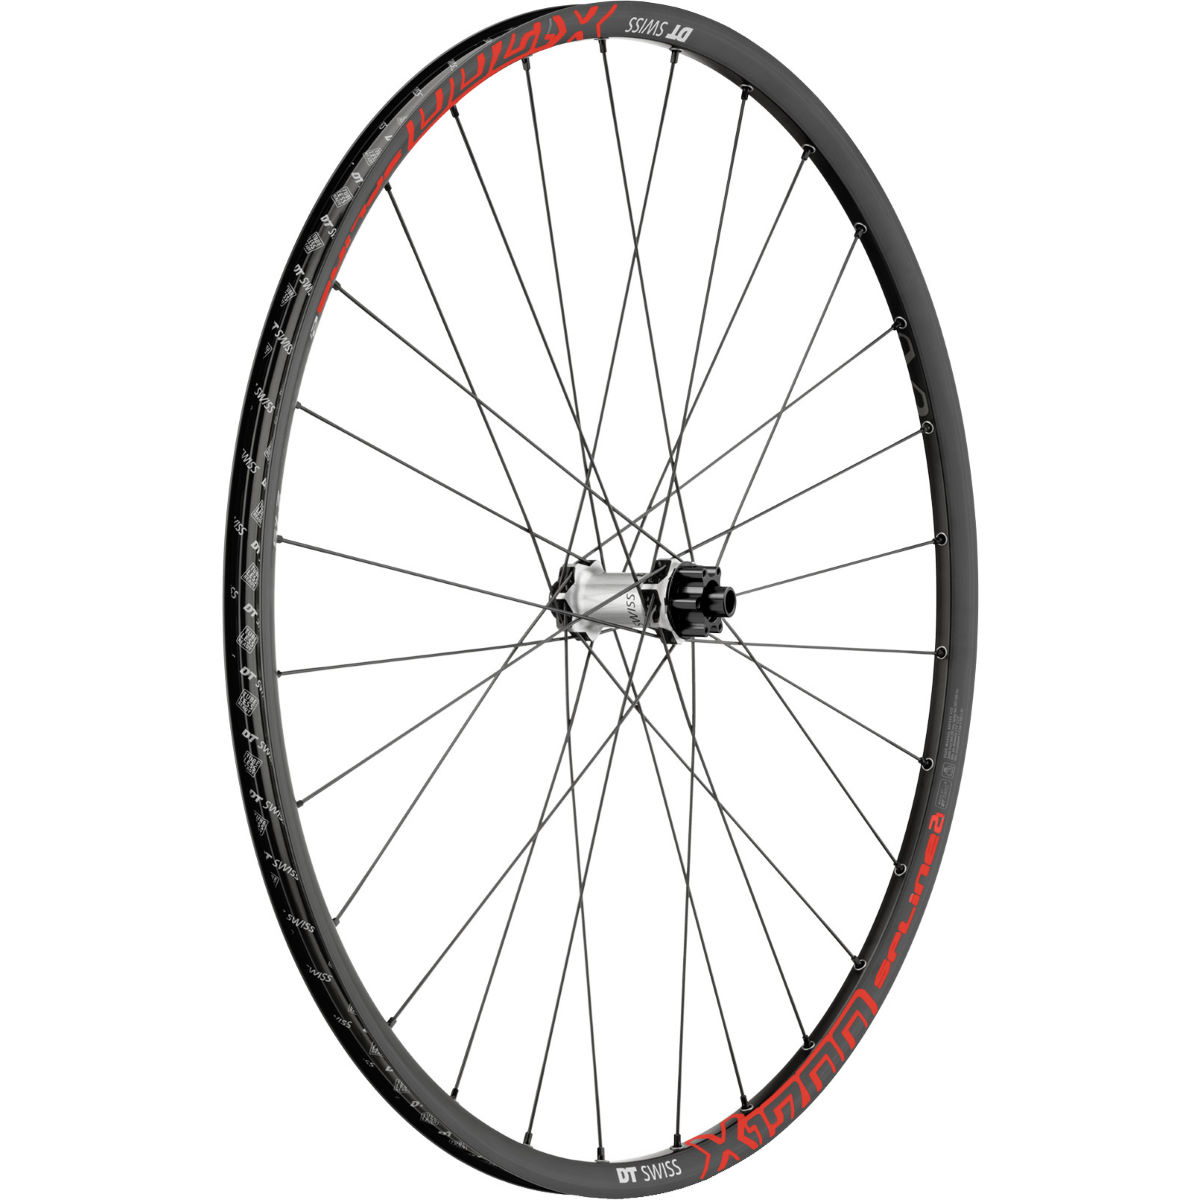 Roue avant VTT DT Swiss X 1700 Spline Two - 29'' Black - Red